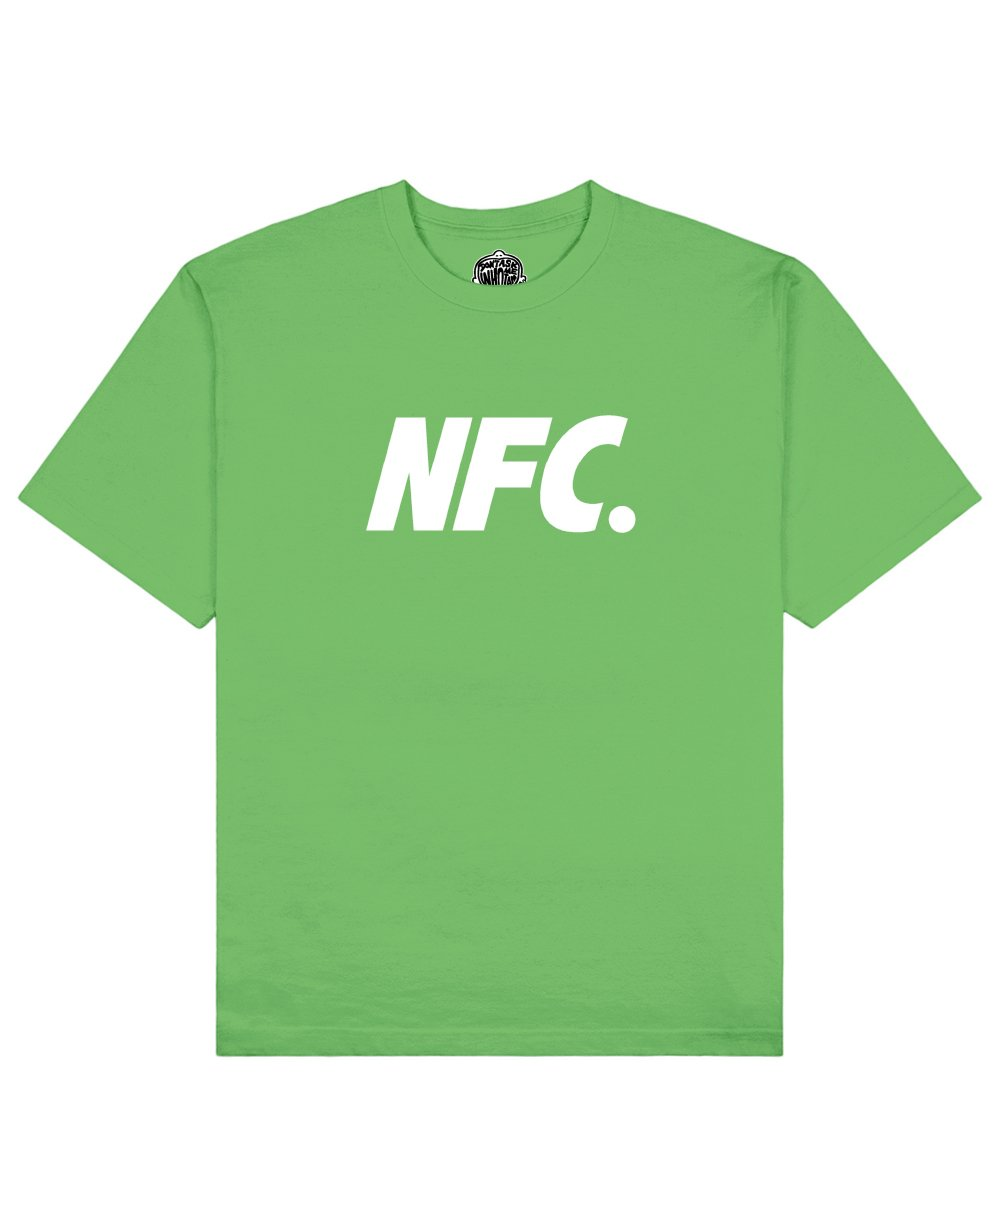 NFC Print T-shirt in Green - T-Shirts - Don't ask me who I am - BRANMA